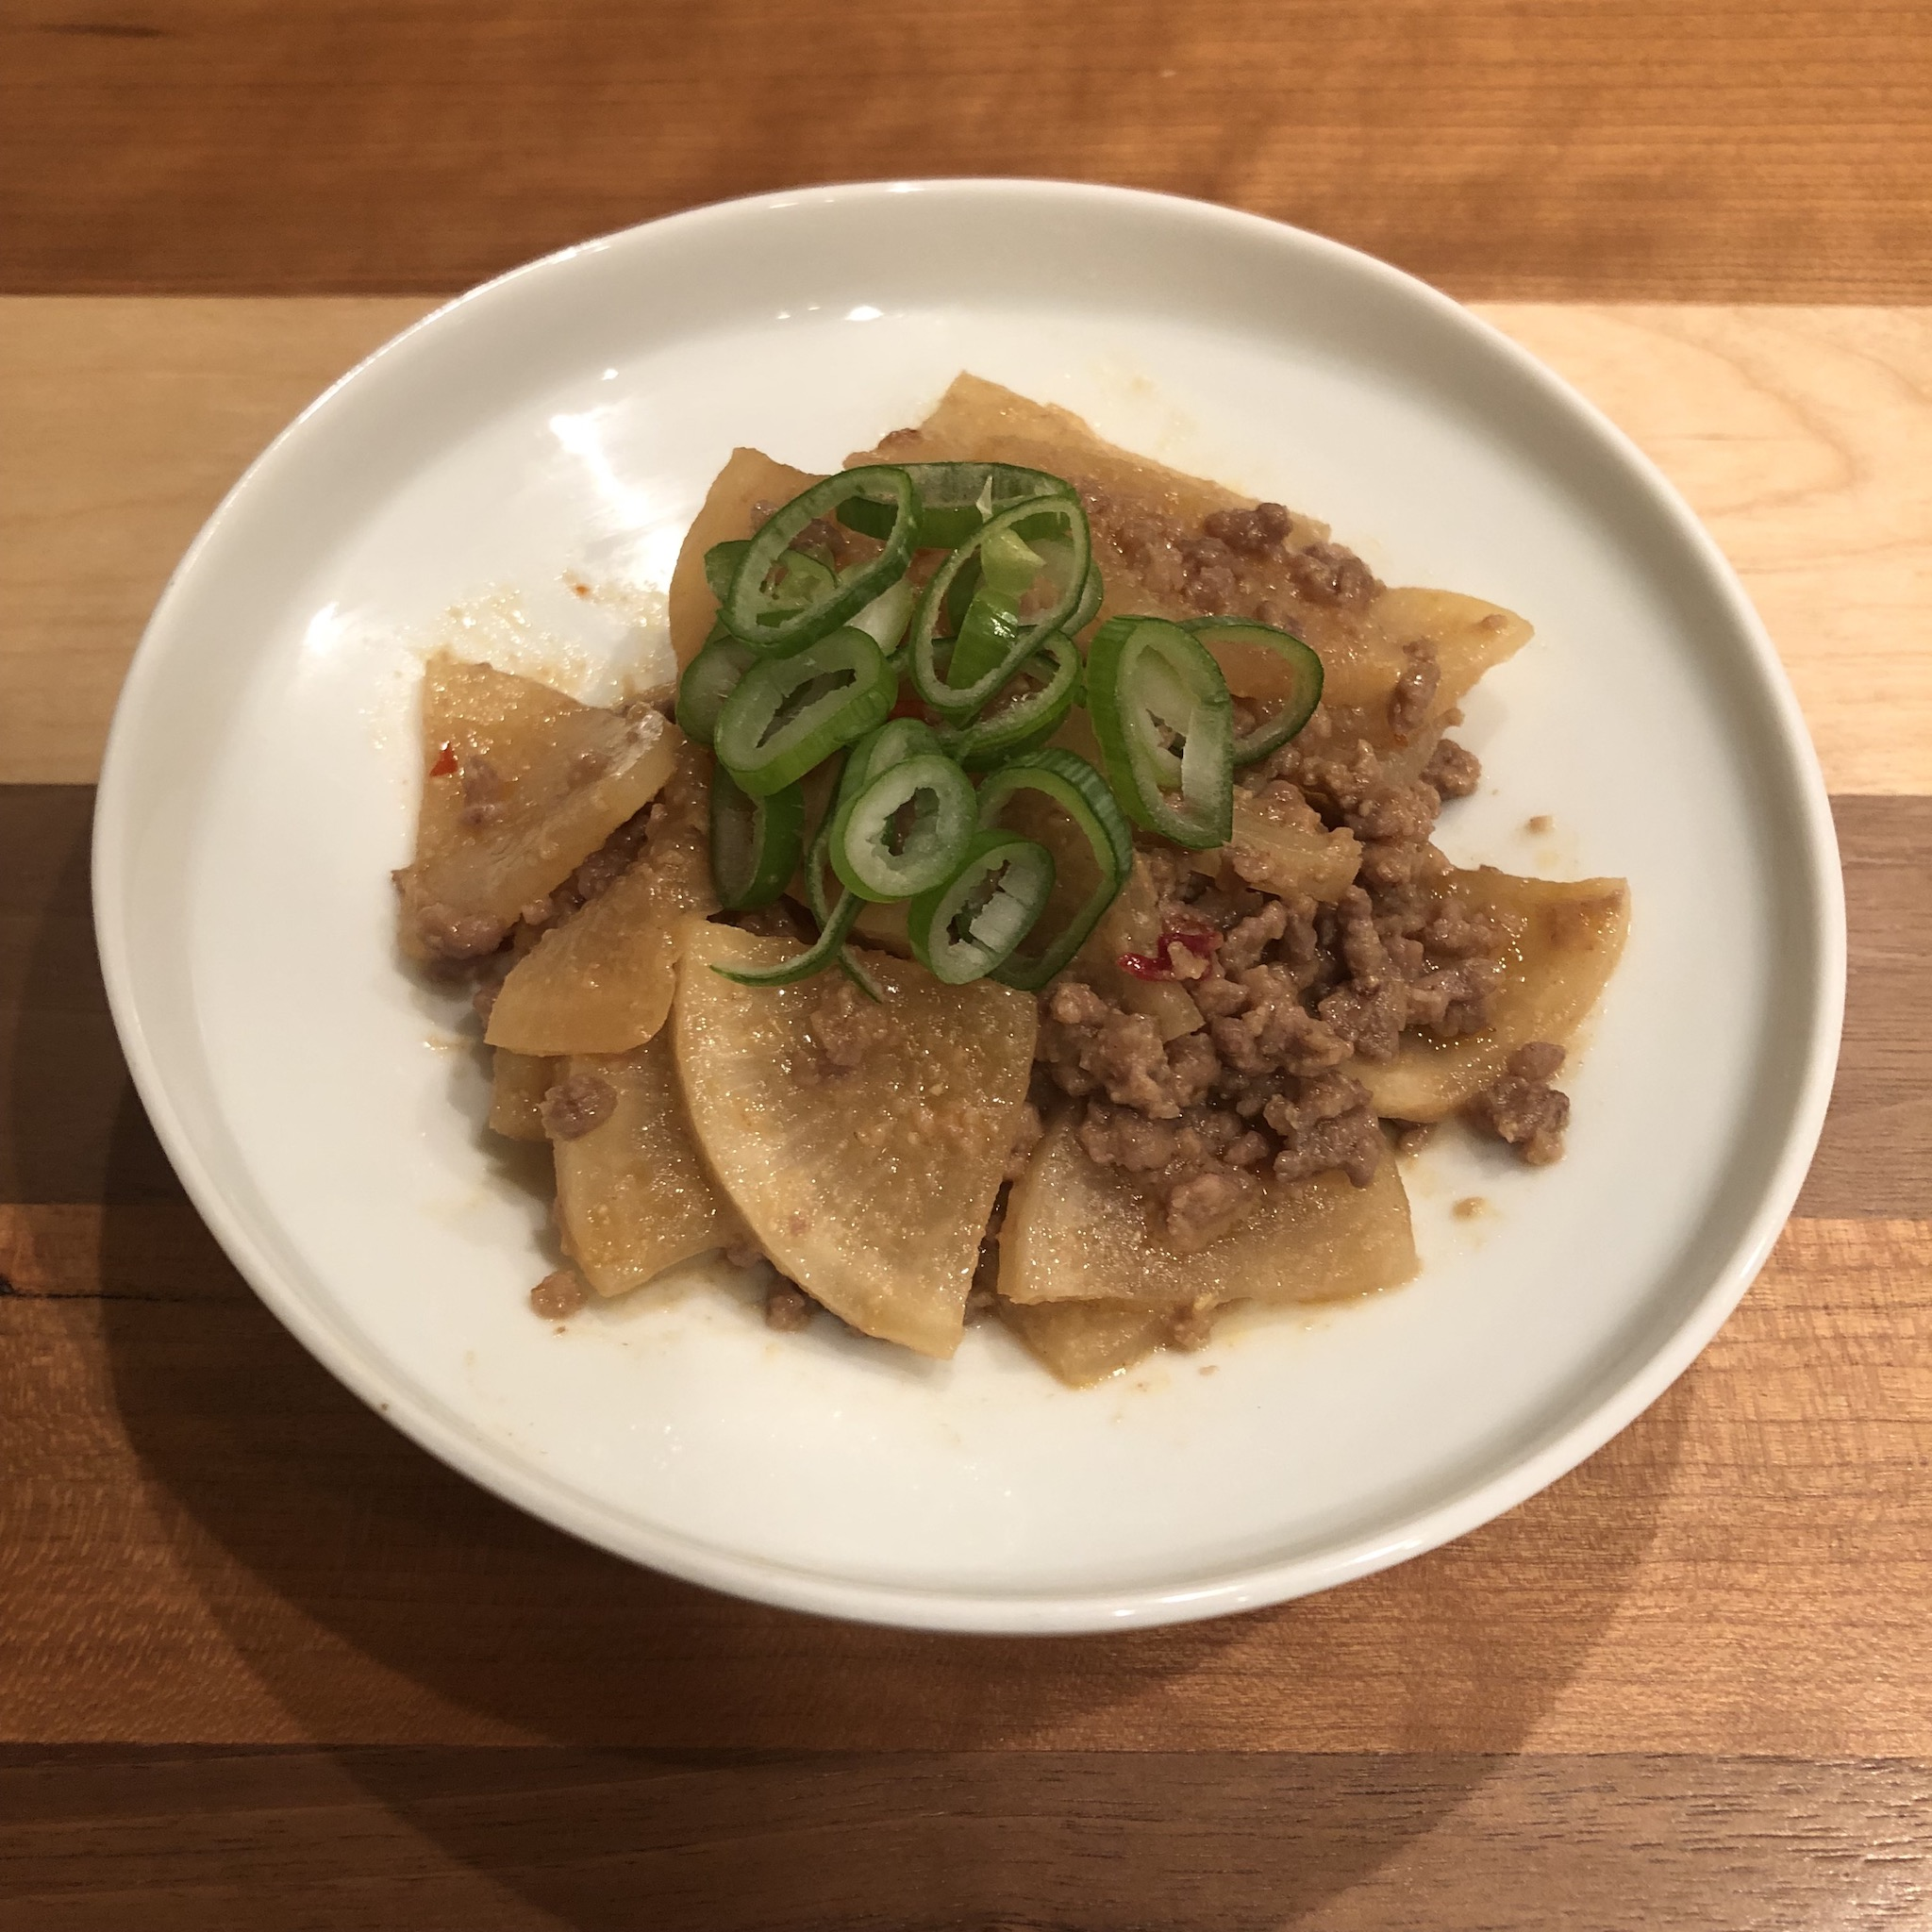 SPICY GROUND MEAT & DAIKON STIR-FRY